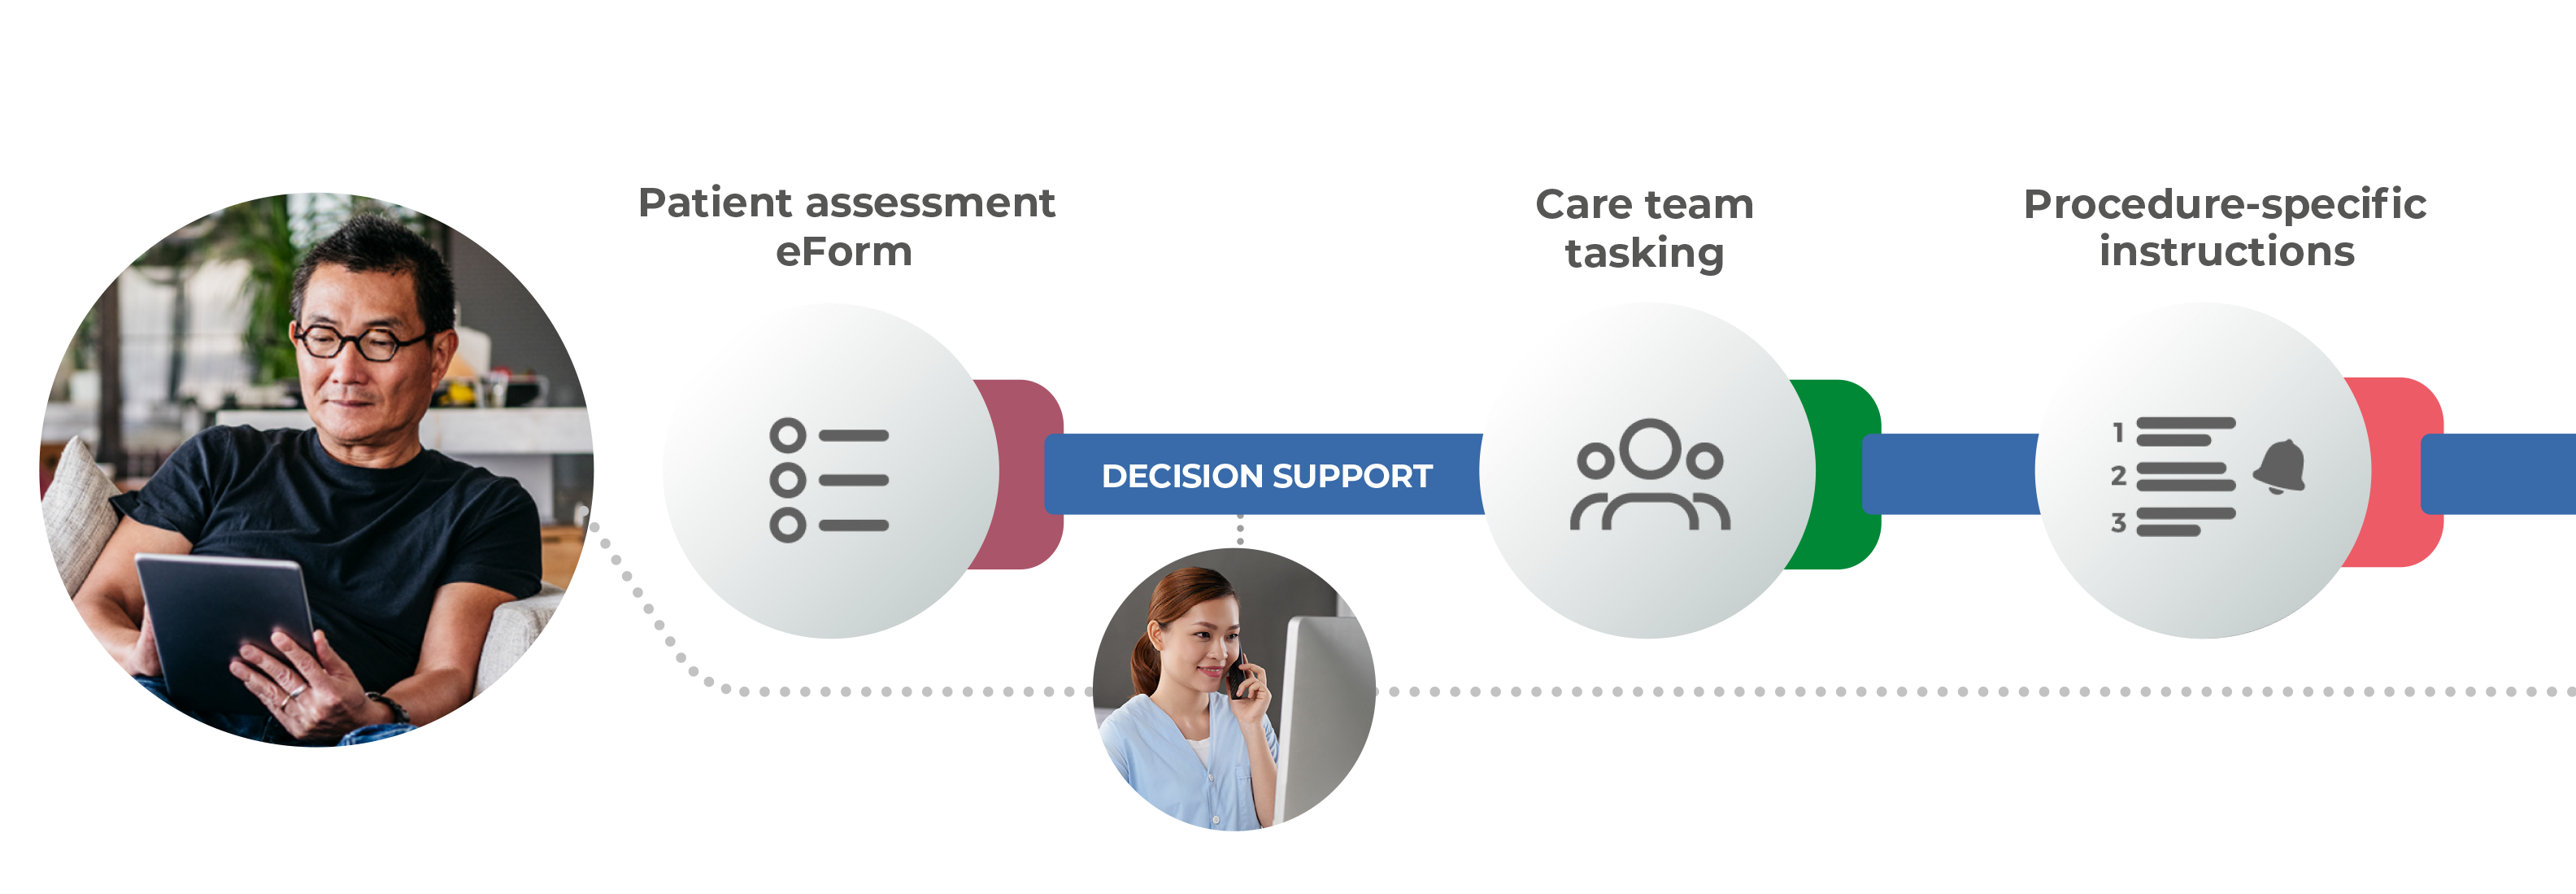 Care-journey-sequence-patient-and-provider-readiness-1